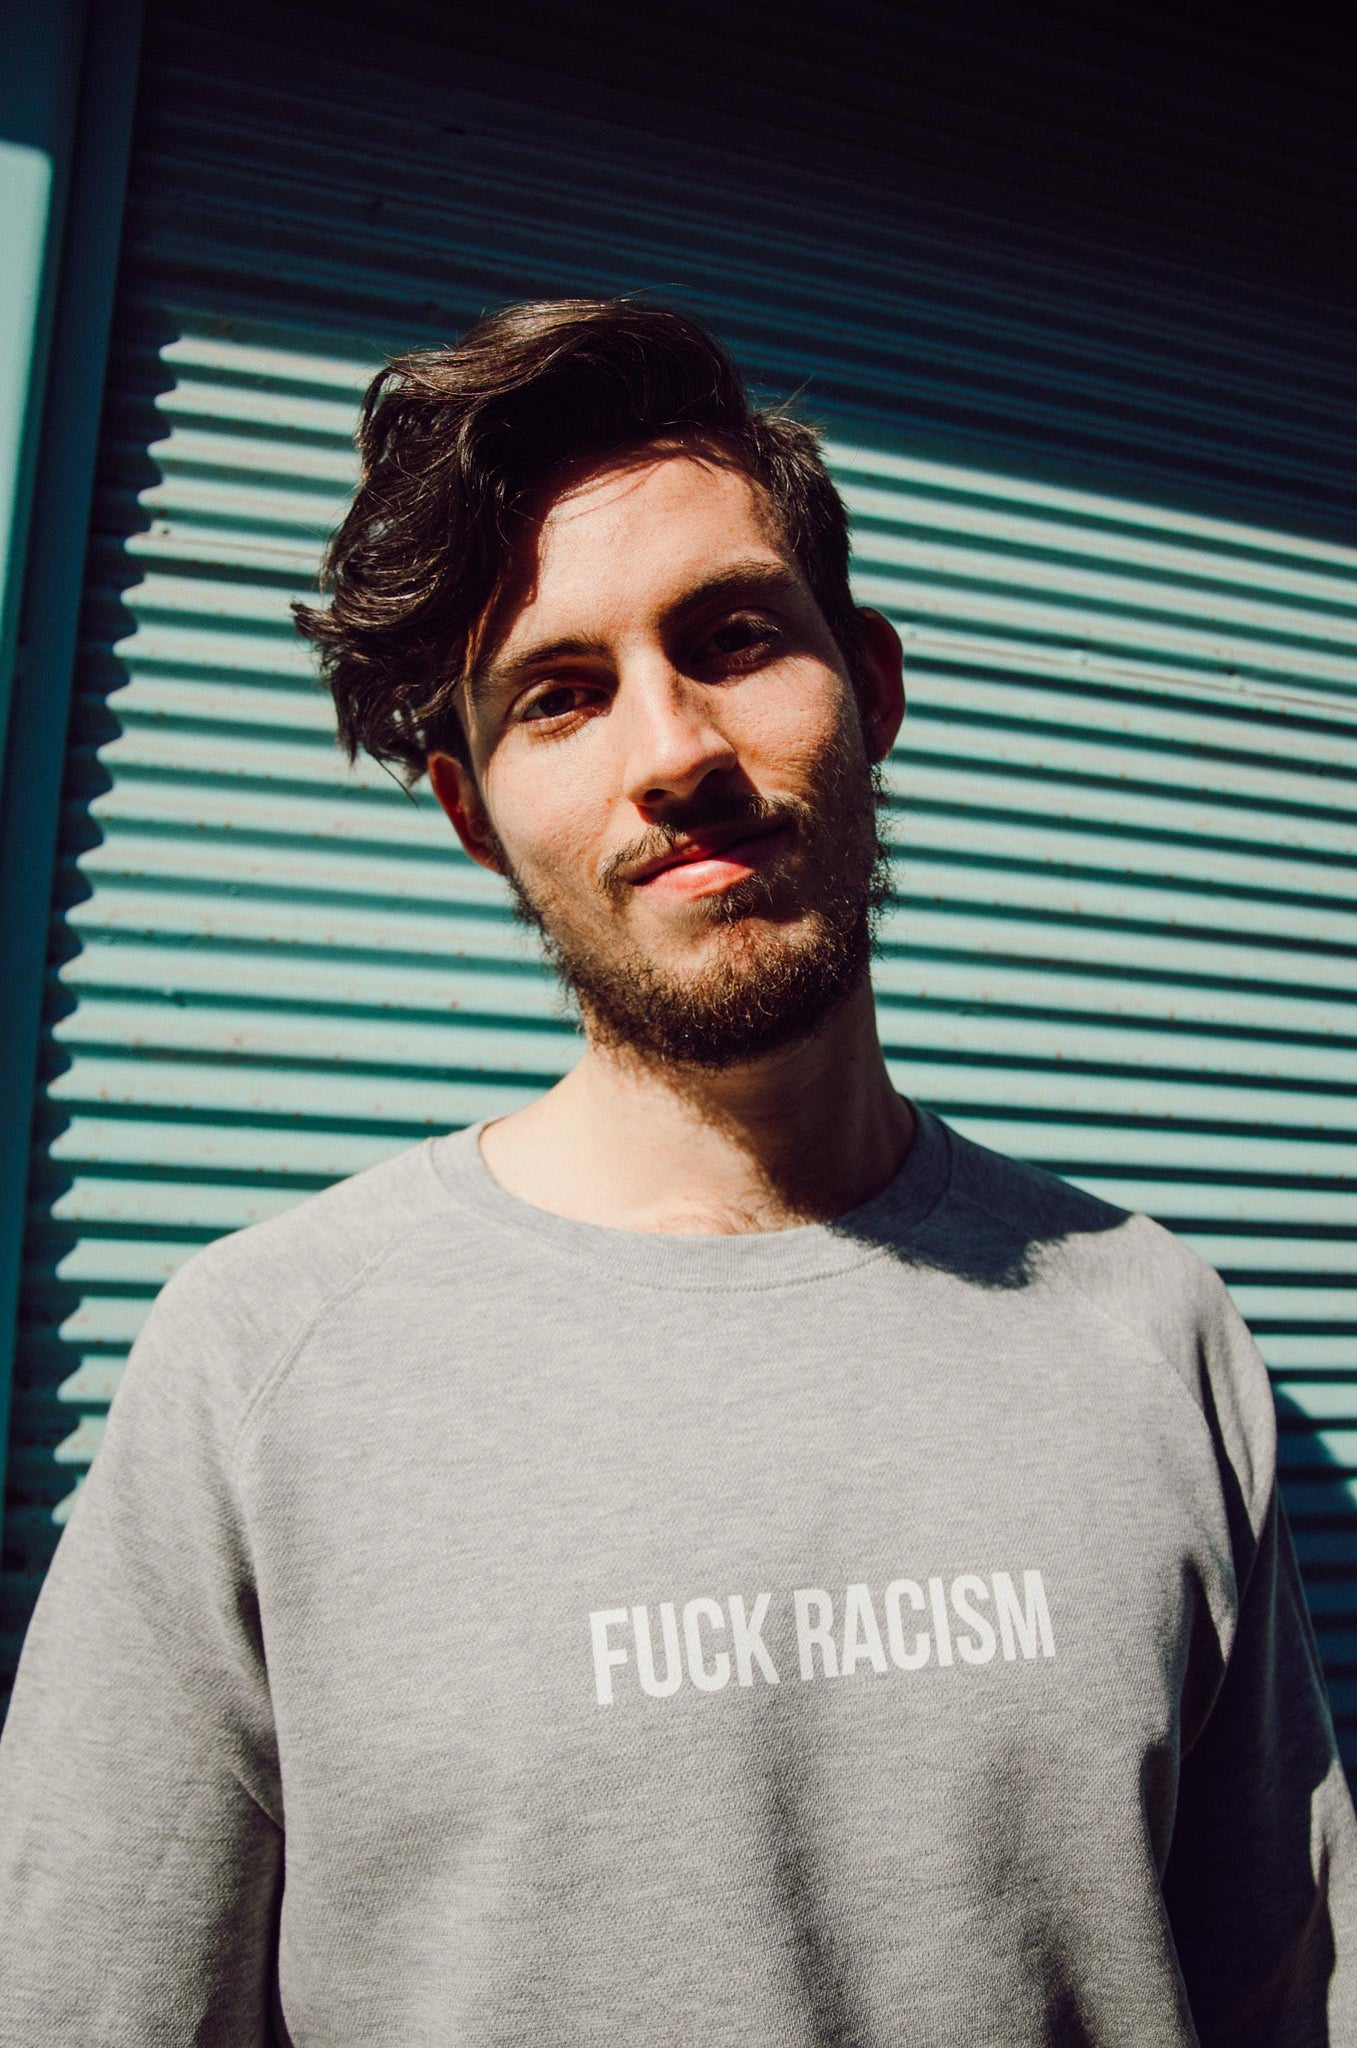 FUCK RACISM SWEATER (unisex) + 5€ donation